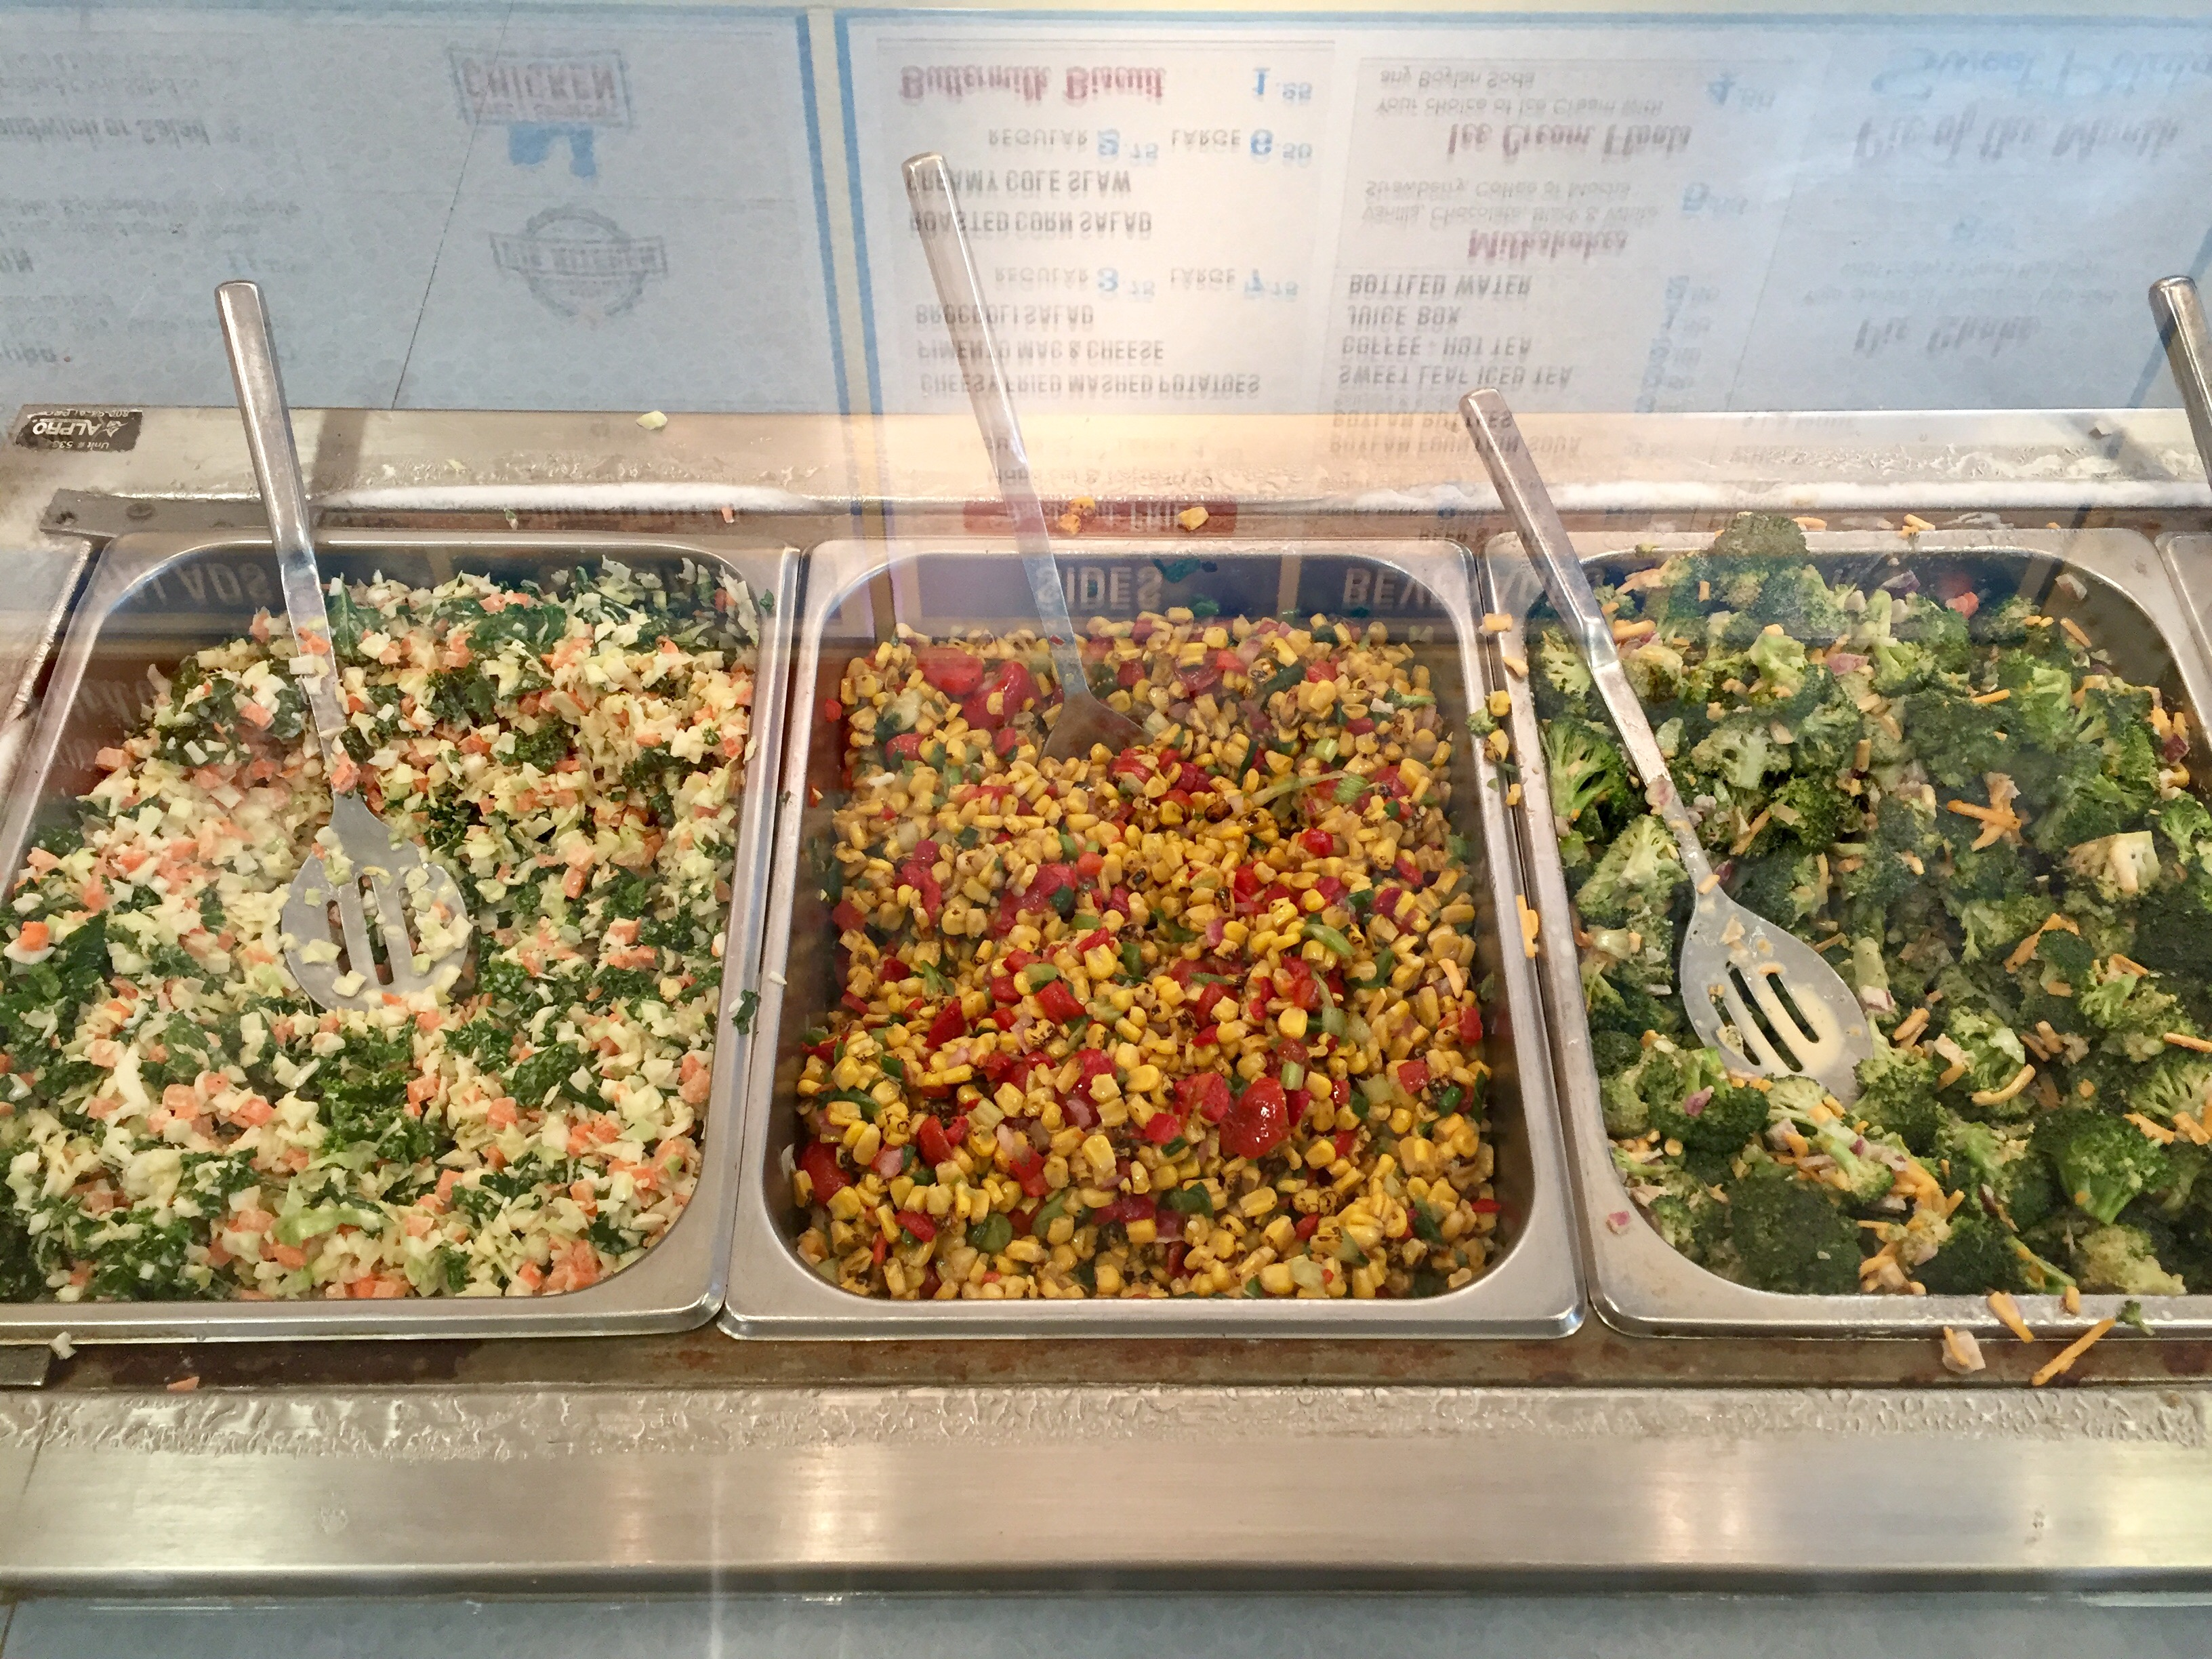 Three kinds of slaw: kale & cabbage, corn & pepper, and broccoli.